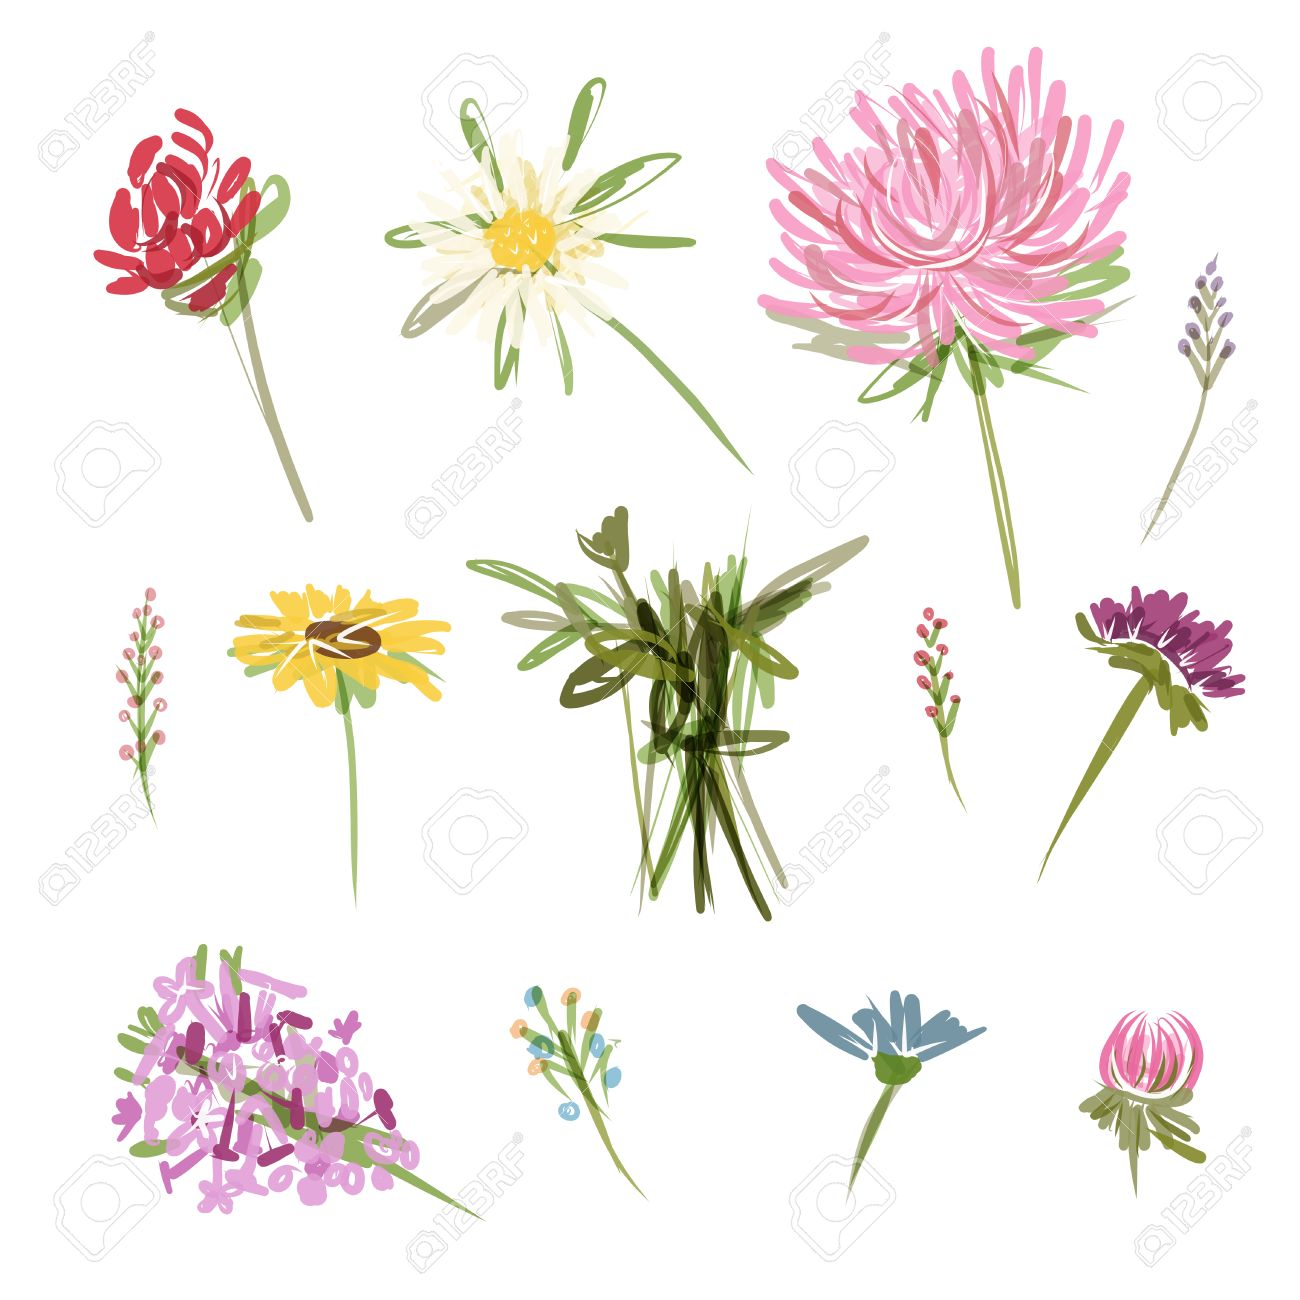 Set of garden flowers, sketch for your design Stock Vector - 23228645